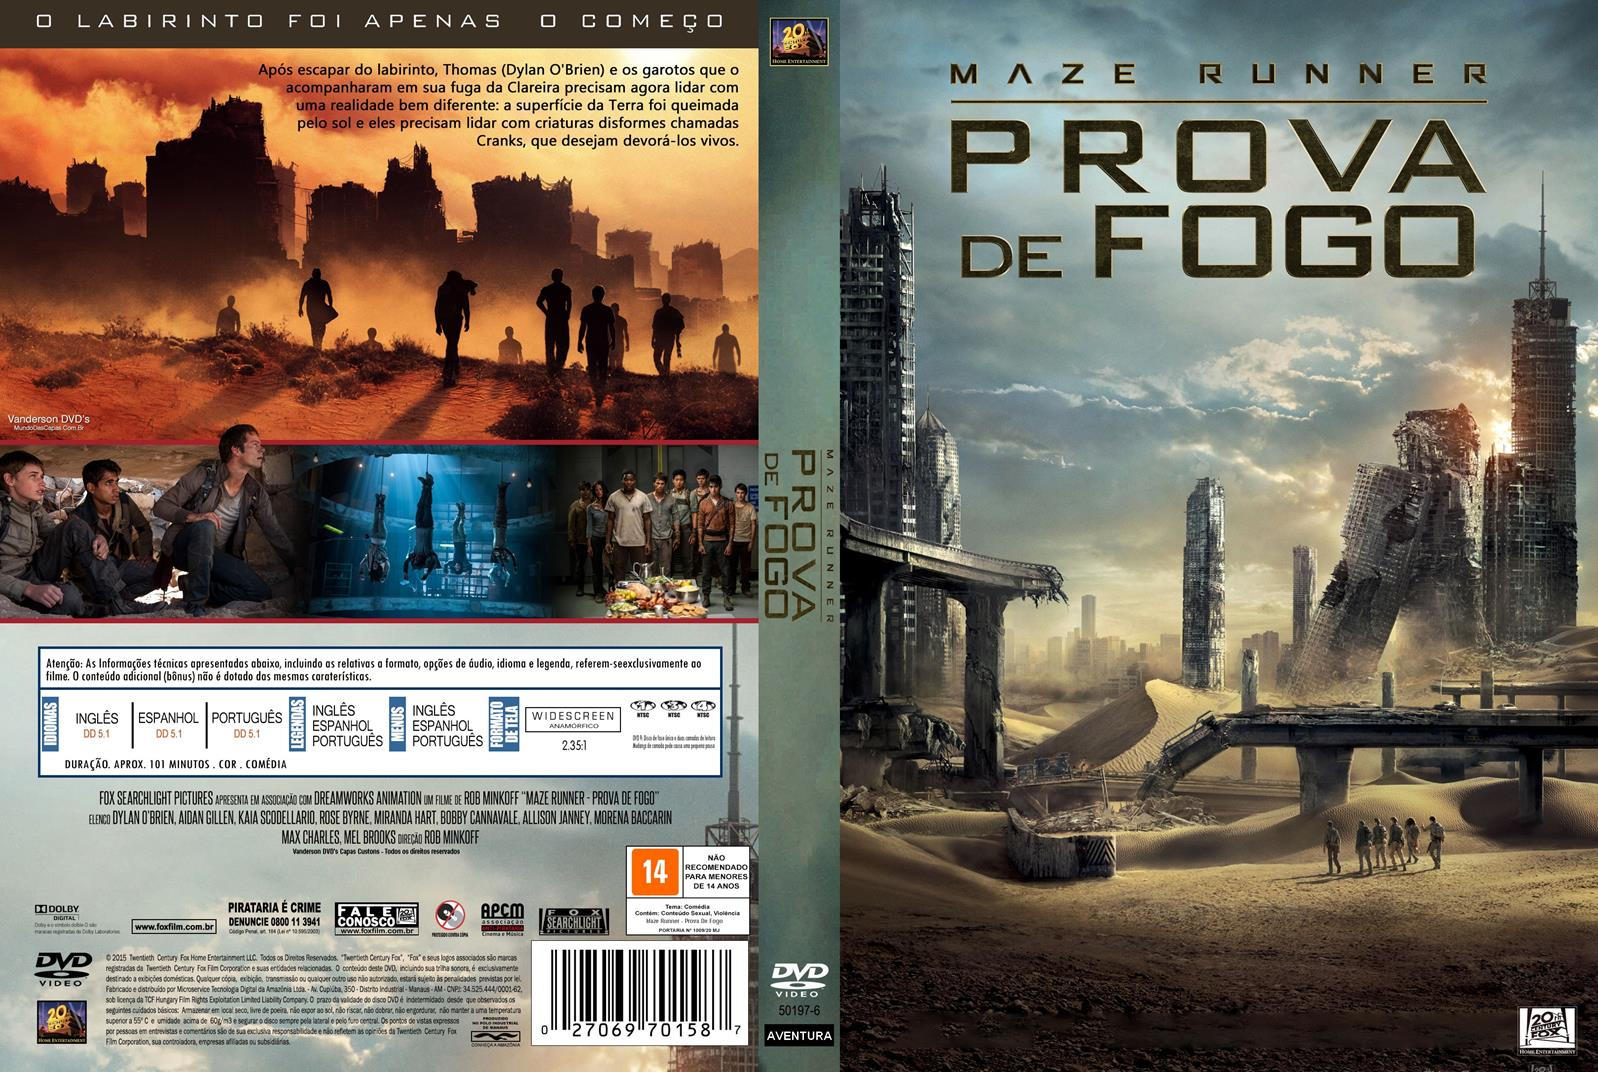 Download Maze Runner Prova de Fogo BDRip XviD Dual Áudio Maze 2BRunner 2B 2BProva 2BDe 2BFogo